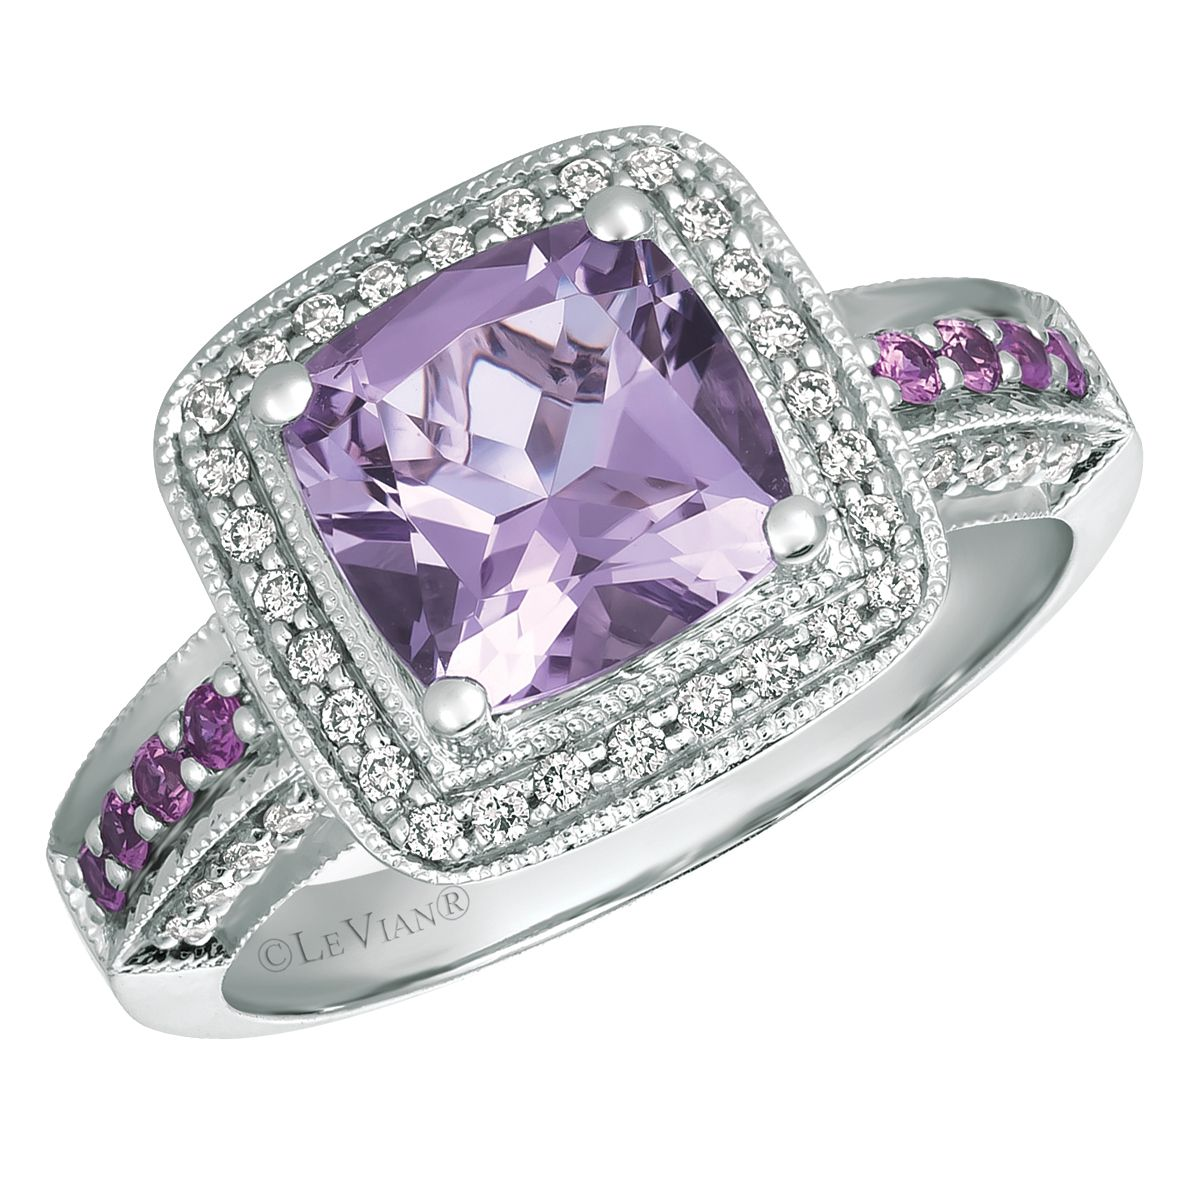 Le Vian Has Crafted A Beautiful Statement Piece Made With Le Vians Signature Gemstones